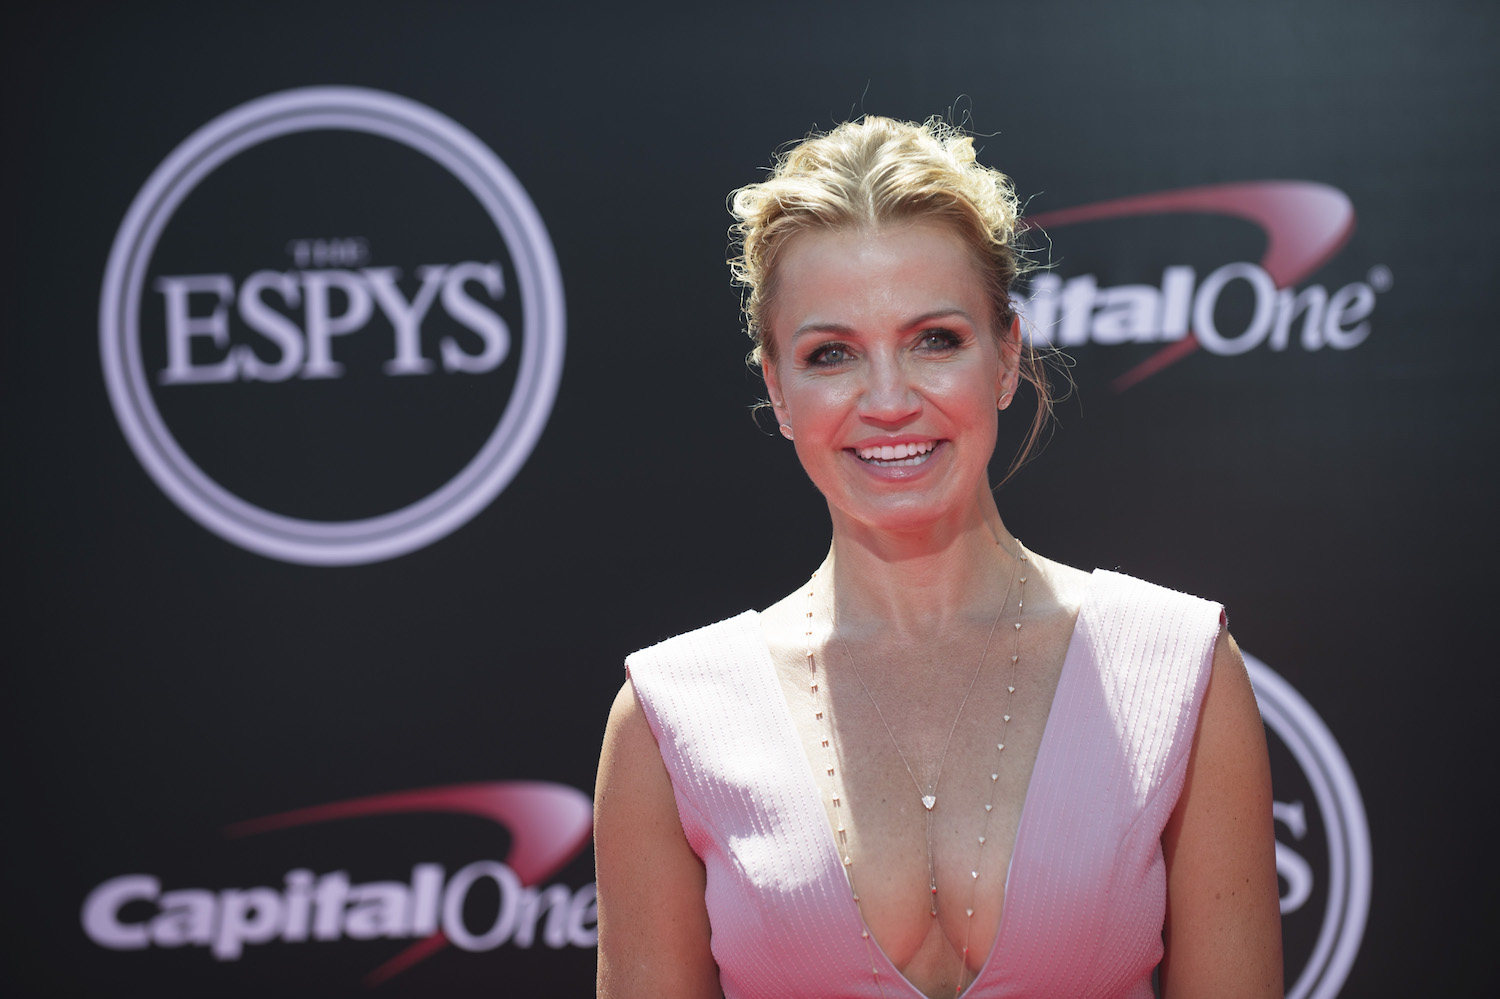 The 45-year old daughter of father (?) and mother(?) Michelle Beadle in 2020 photo. Michelle Beadle earned a  million dollar salary - leaving the net worth at  million in 2020